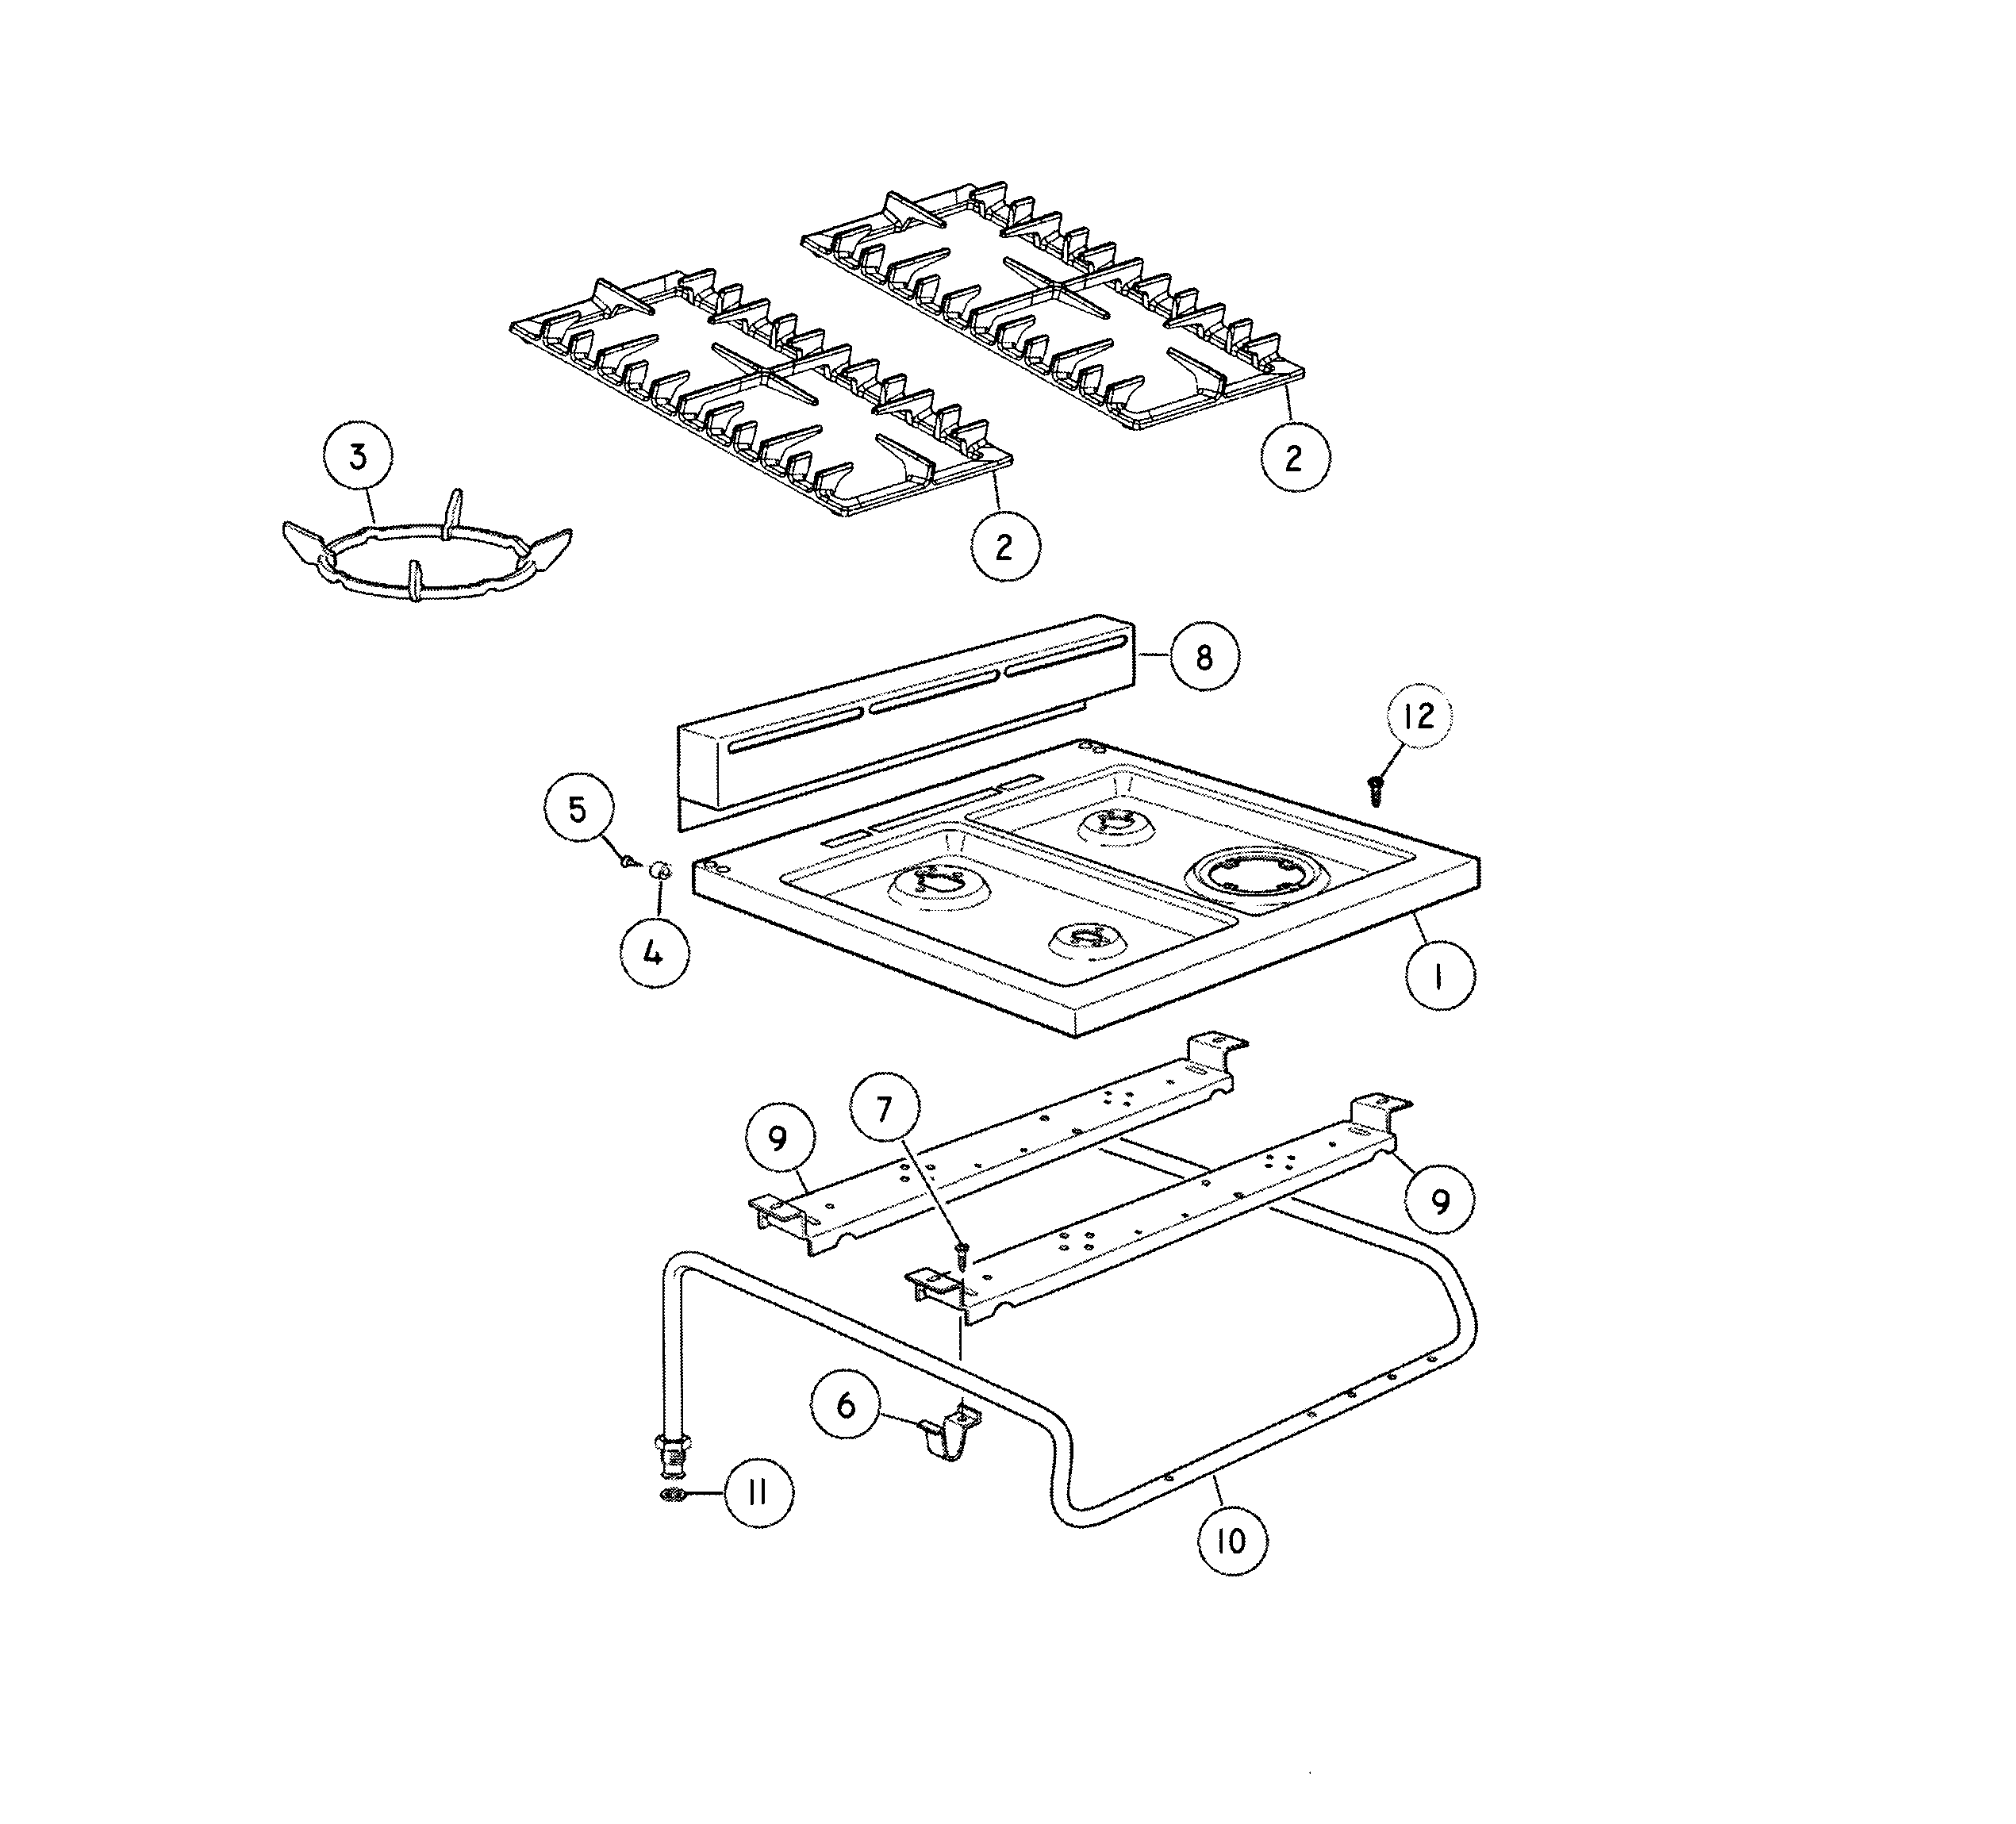 fisher paykel dishwasher parts diagram 2001 chevy s10 radio wiring and gas range model or24sdmbgx288654a